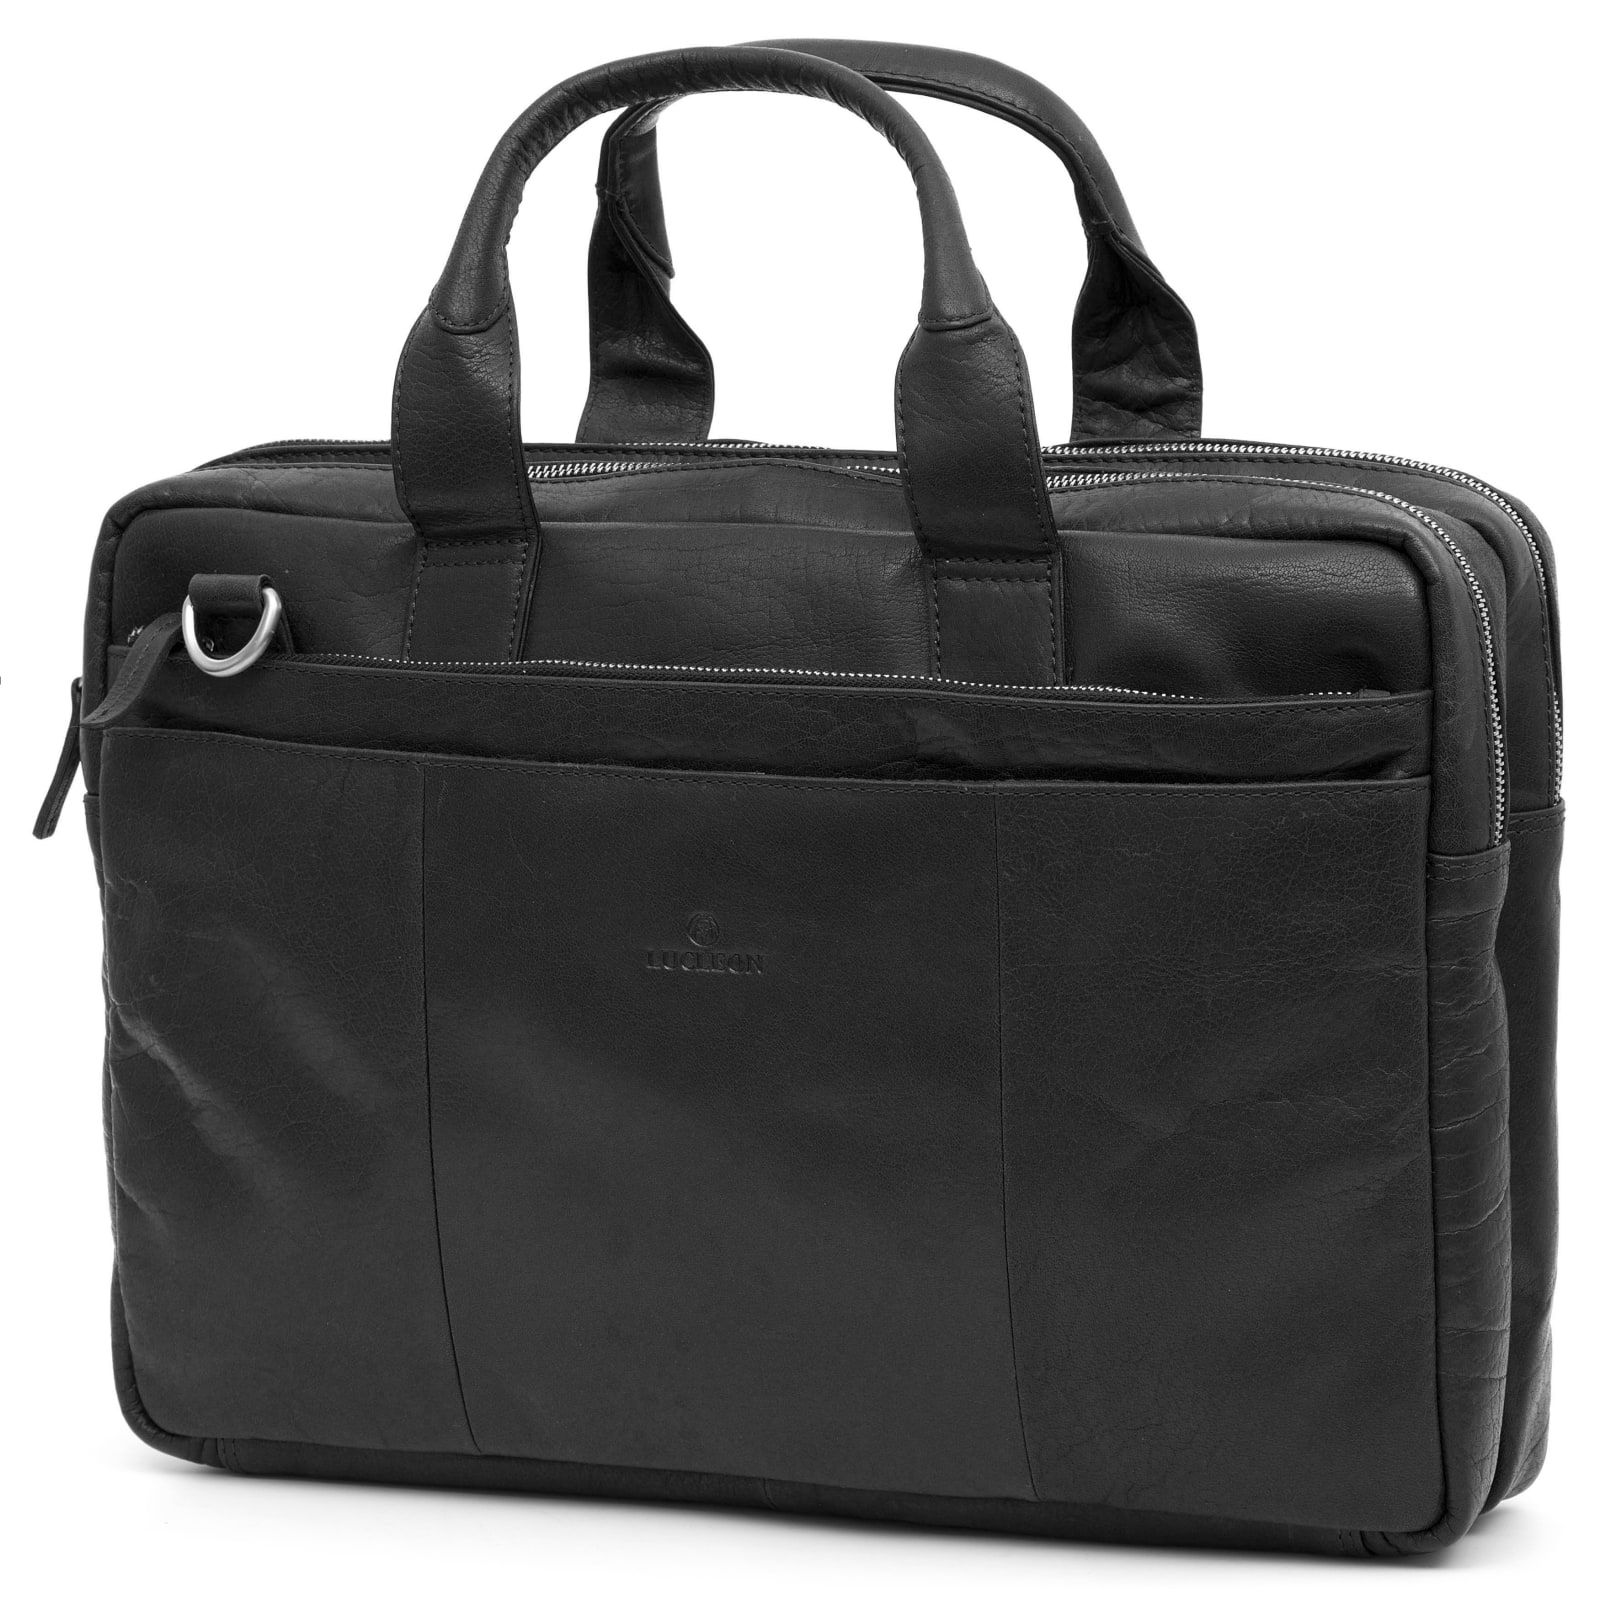 Photo of Montreal Black Leather Laptop Bag | In stock! | Lucleon